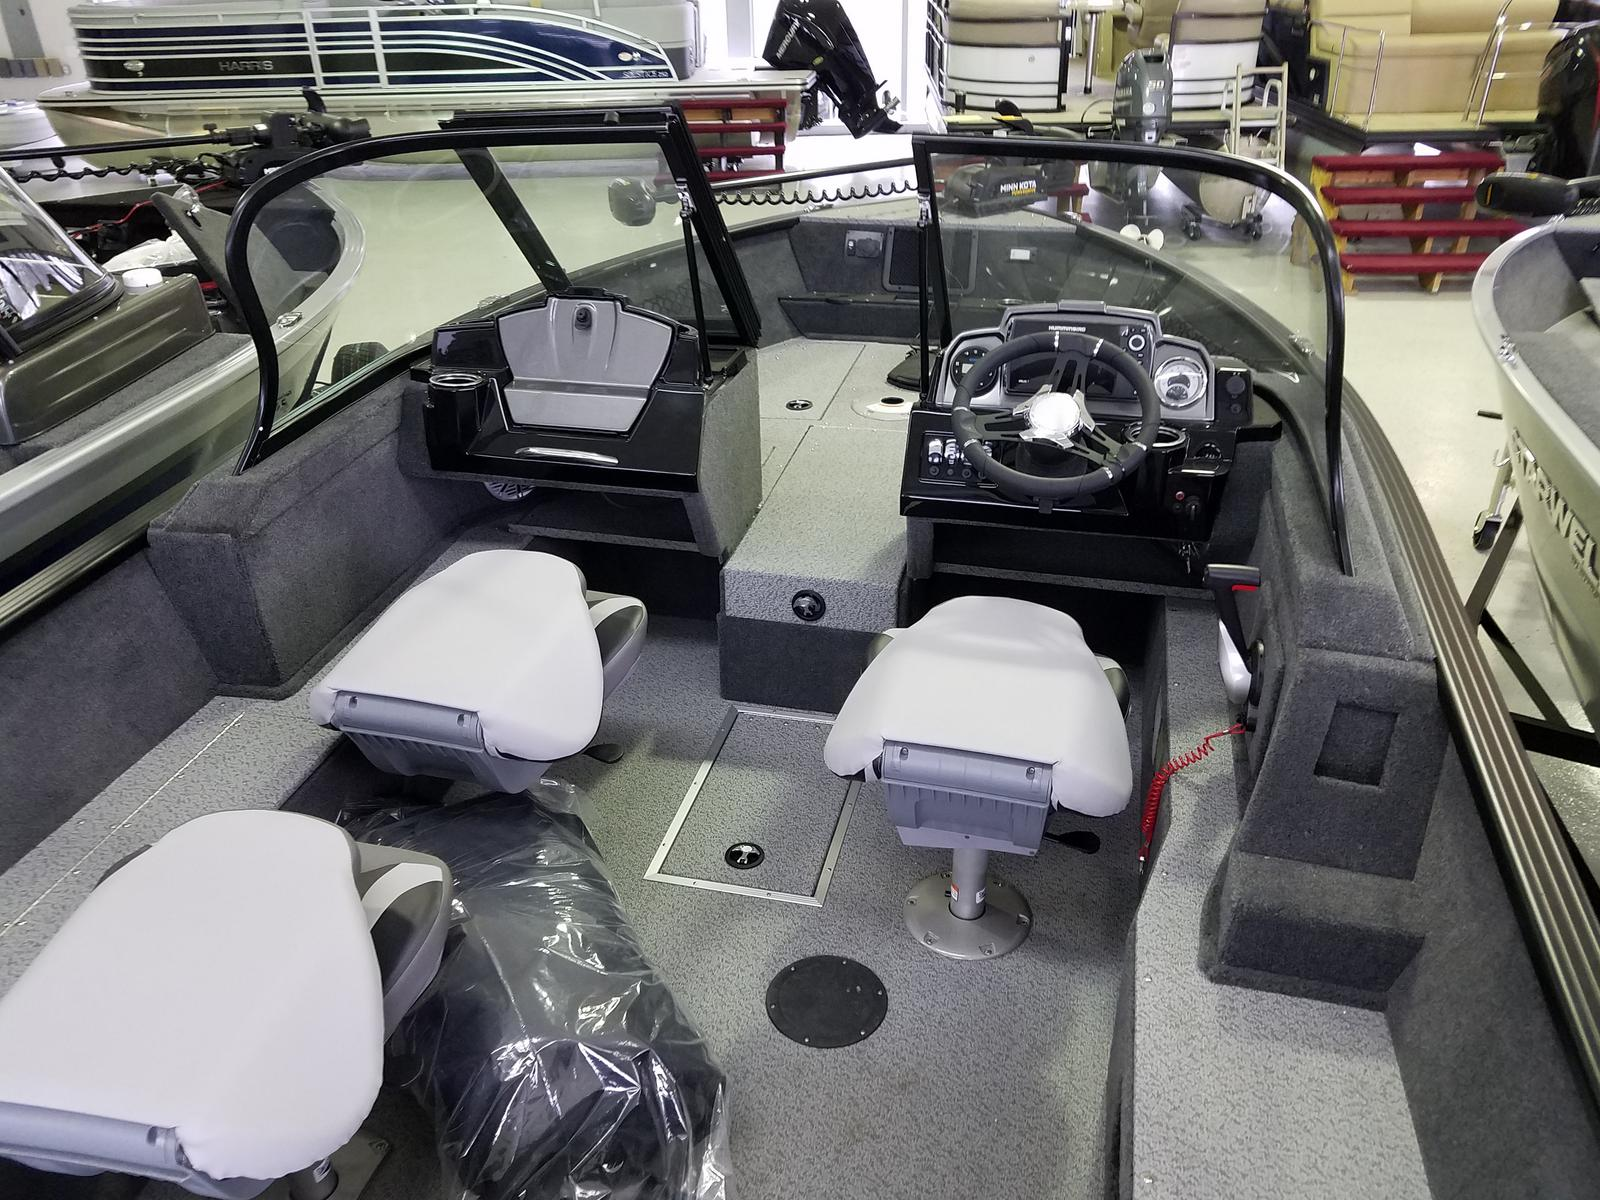 2021 Starweld boat for sale, model of the boat is Flex Pro 17 DC & Image # 3 of 7